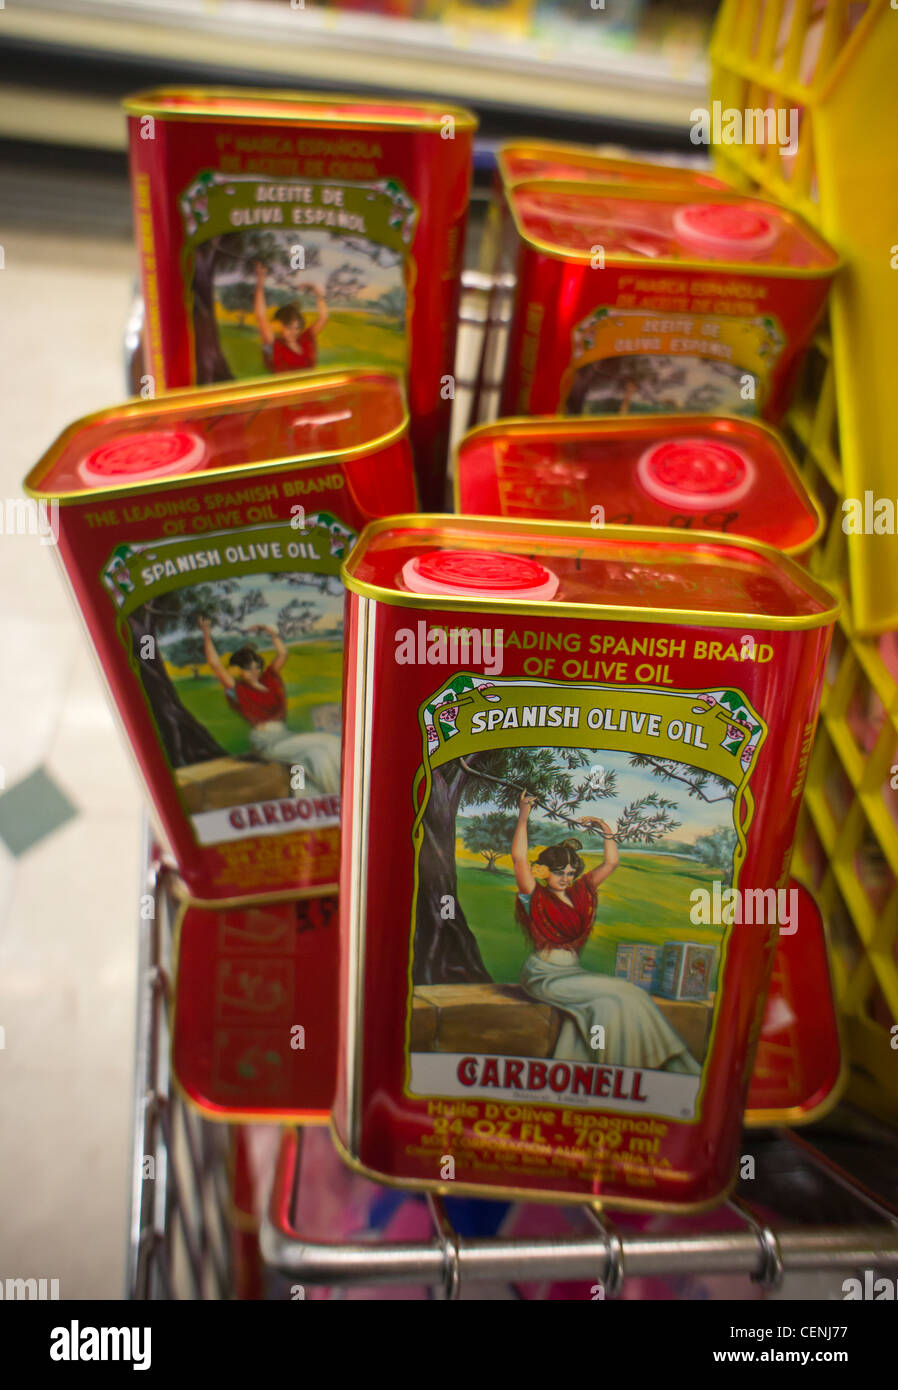 Cans of imported Spanish olive oil are seen on a supermarket shelf